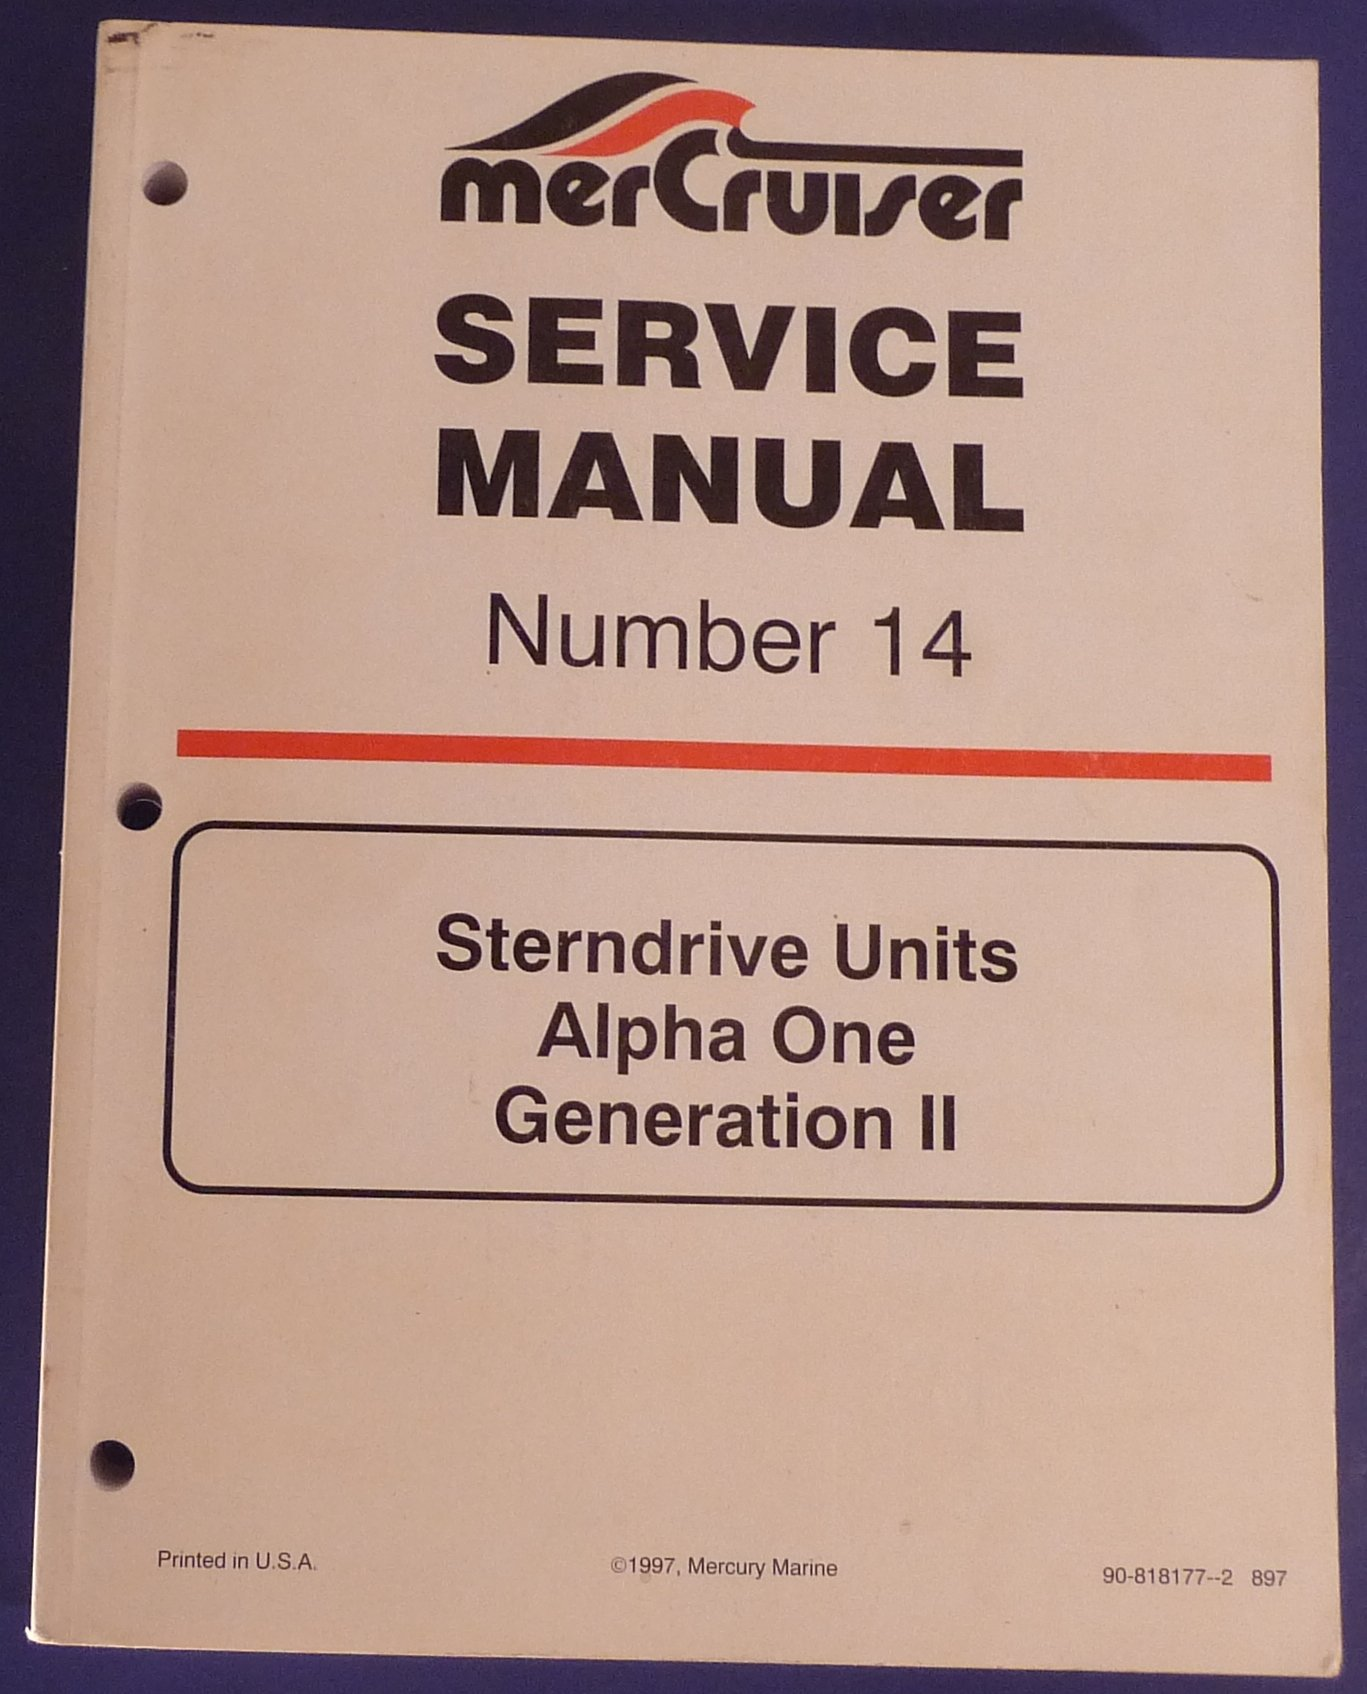 mercruiser service manual number 14 sterndrive units alpha one rh amazon com mercruiser service manual 23 pdf mercruiser service manual 23